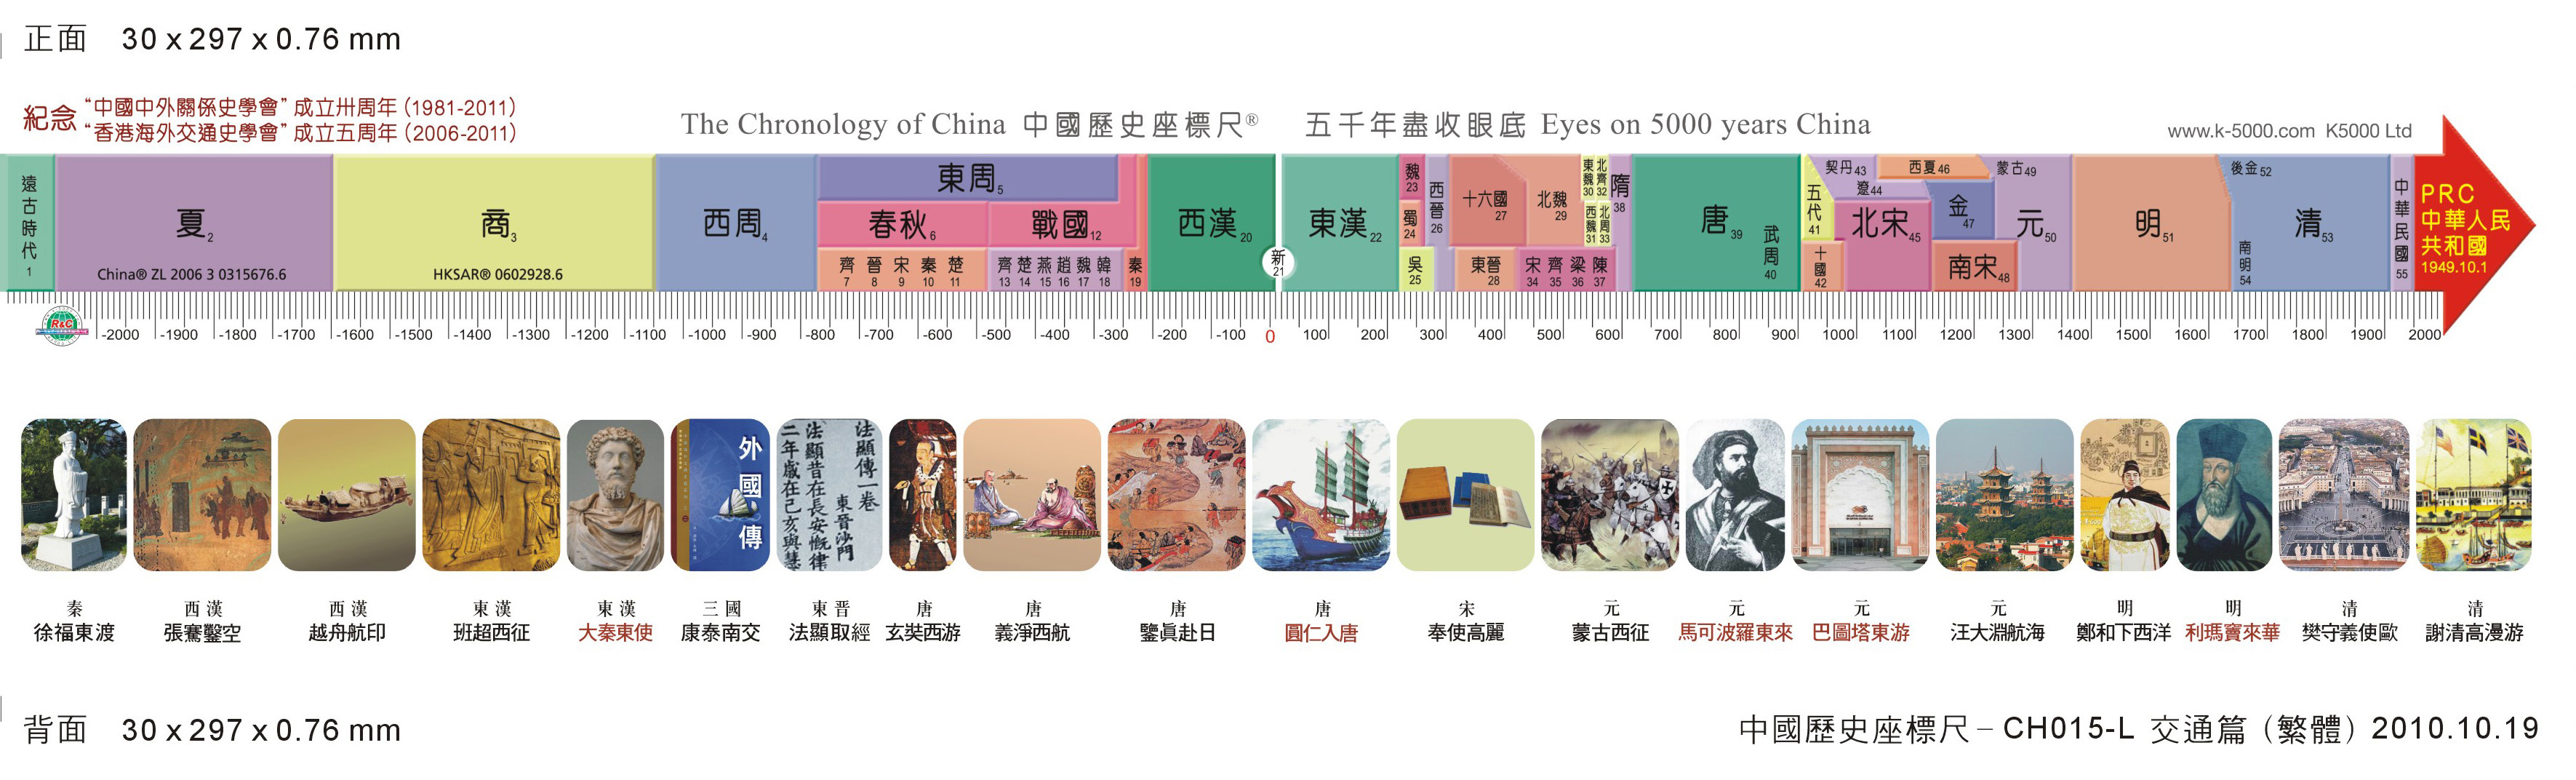 the_chronology_of_china